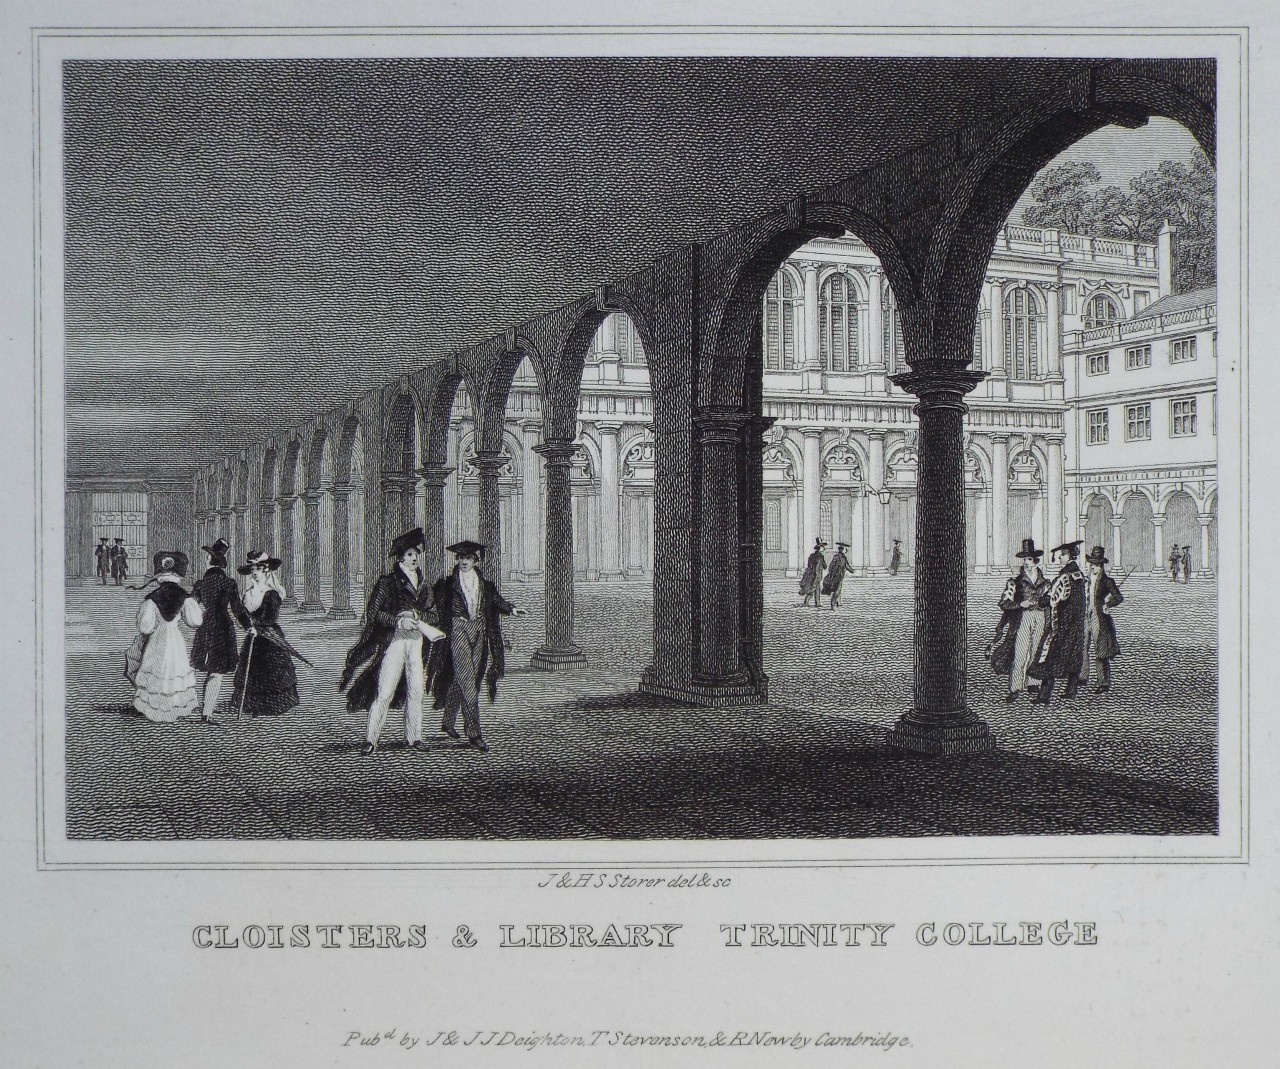 Print - Cloisters & Library Trinity College - Storer